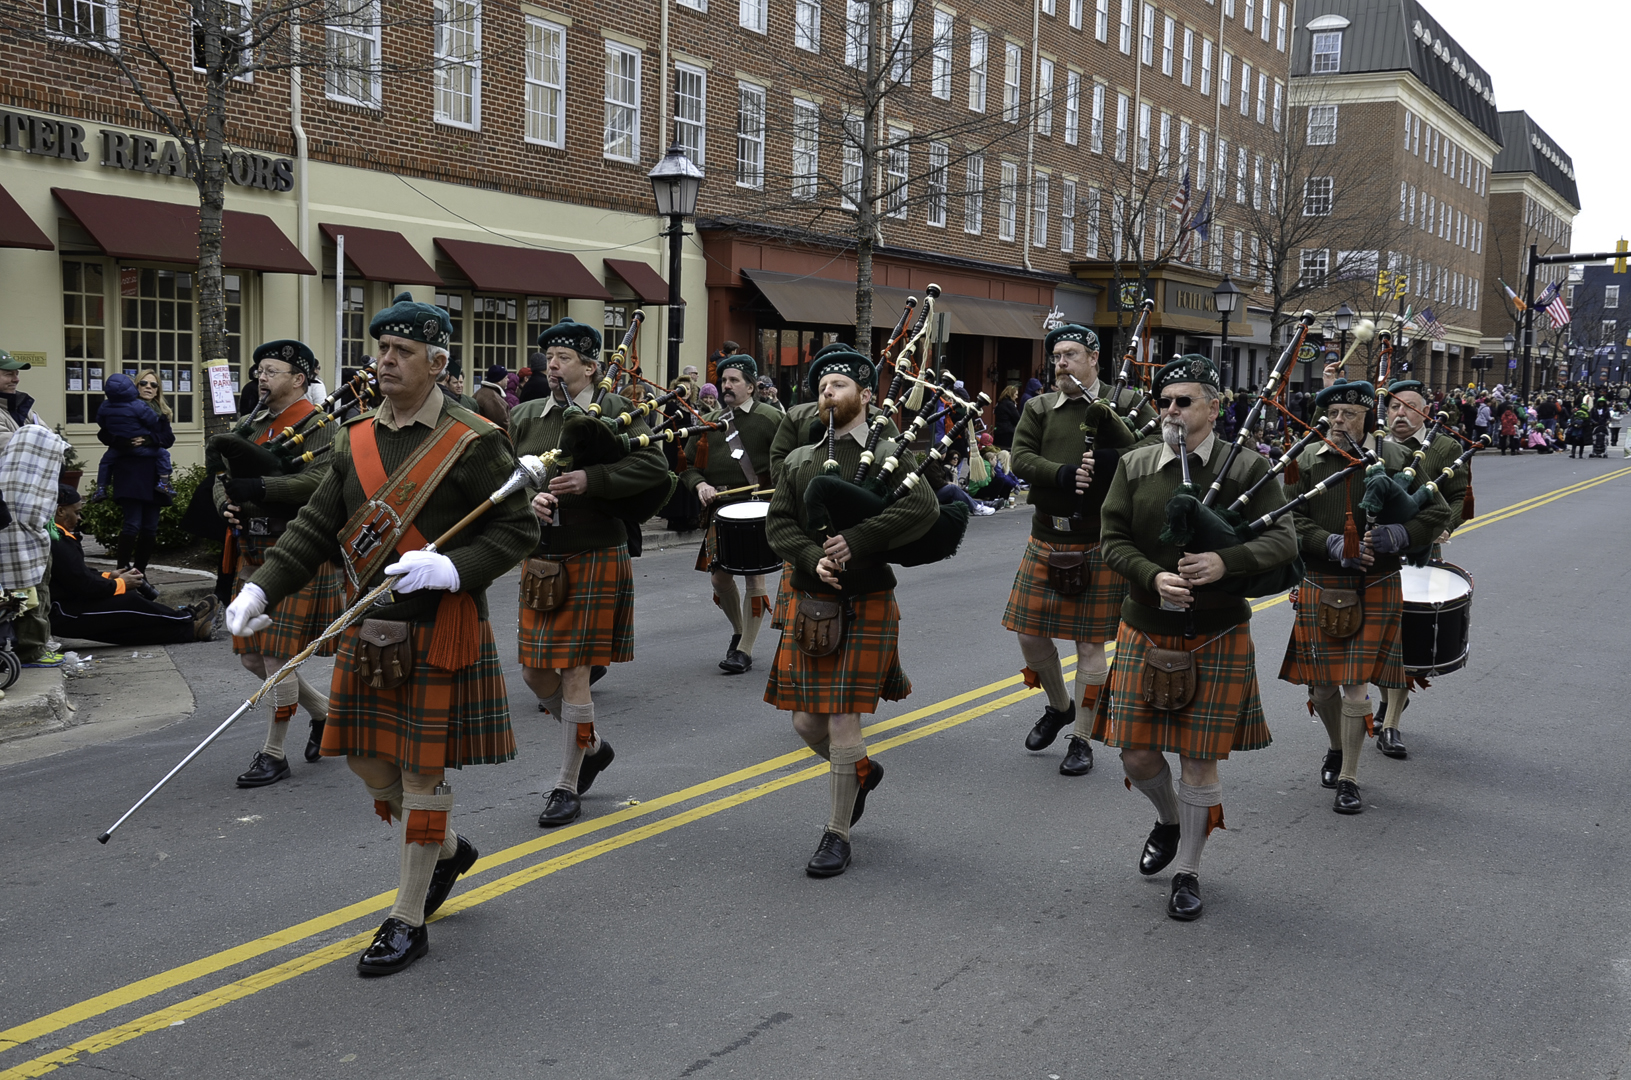 38thAnnual Parade will be the Largest St. Patrick's Day Parade in the D.C. Region in 2019